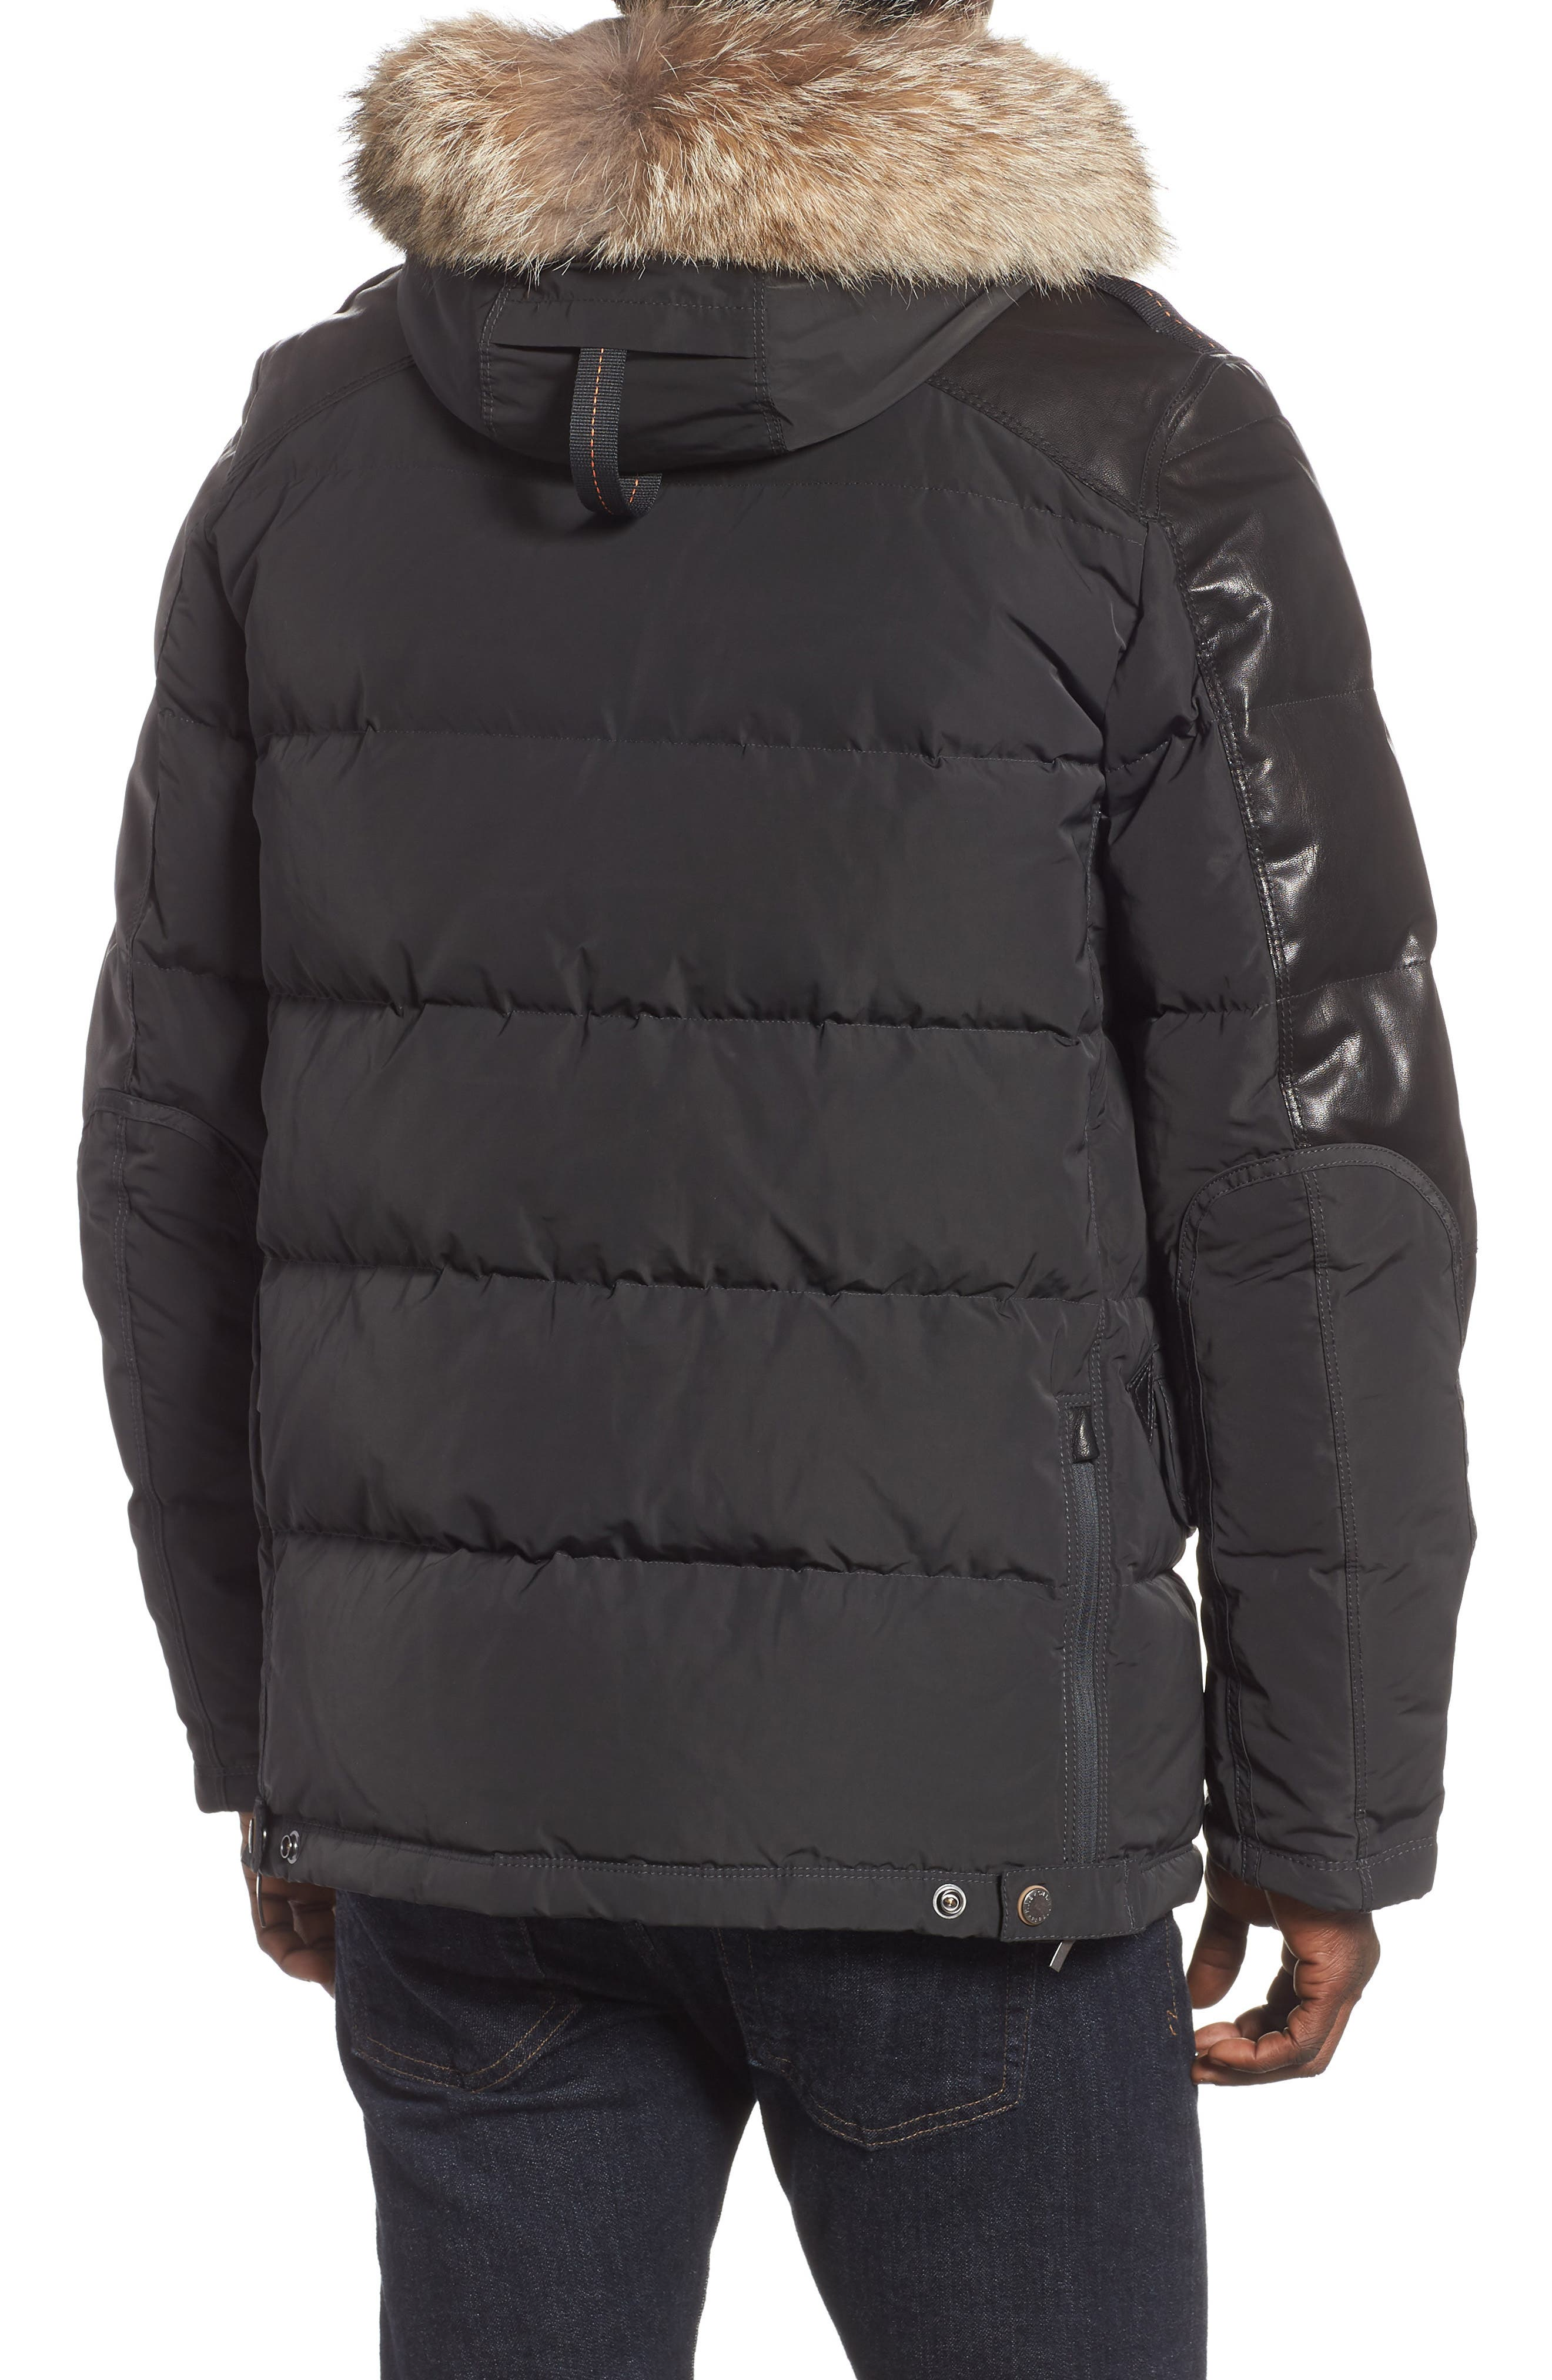 Dhole Hooded Down Jacket with Genuine Coyote Fur Trim,                             Alternate thumbnail 2, color,                             060